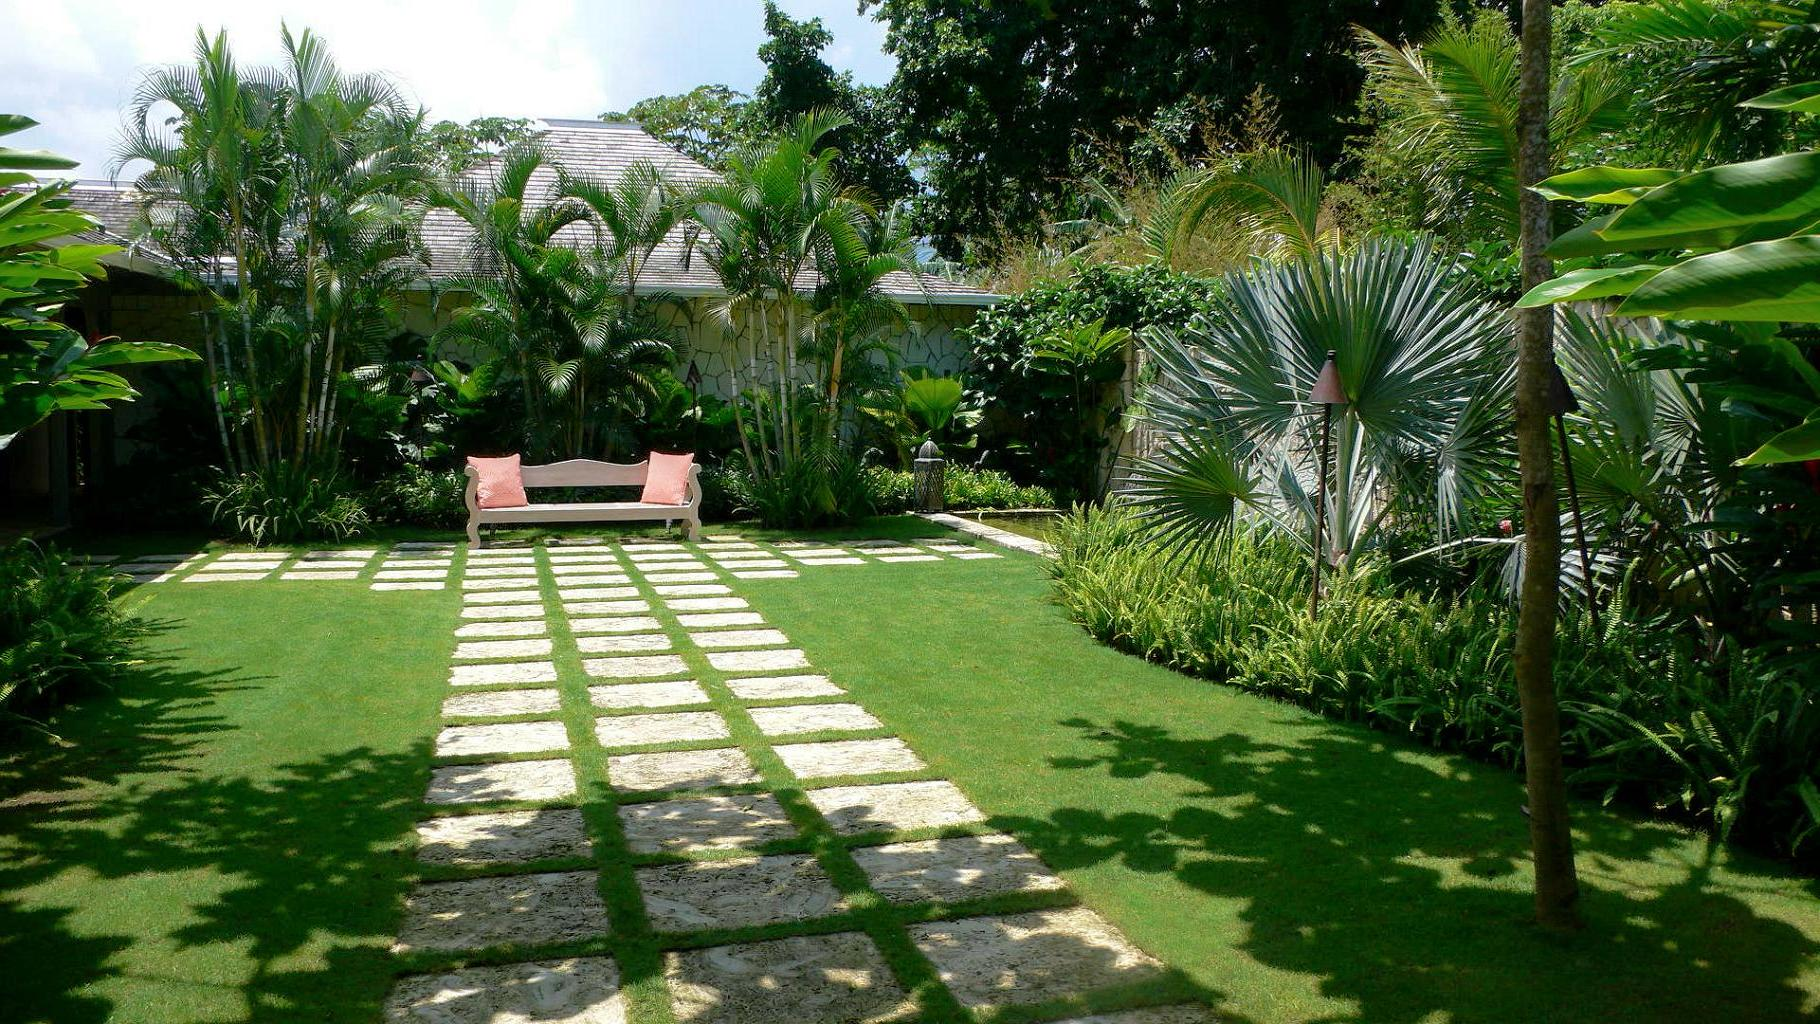 Tropical garden design landscaping in brisbane for Home garden design uk